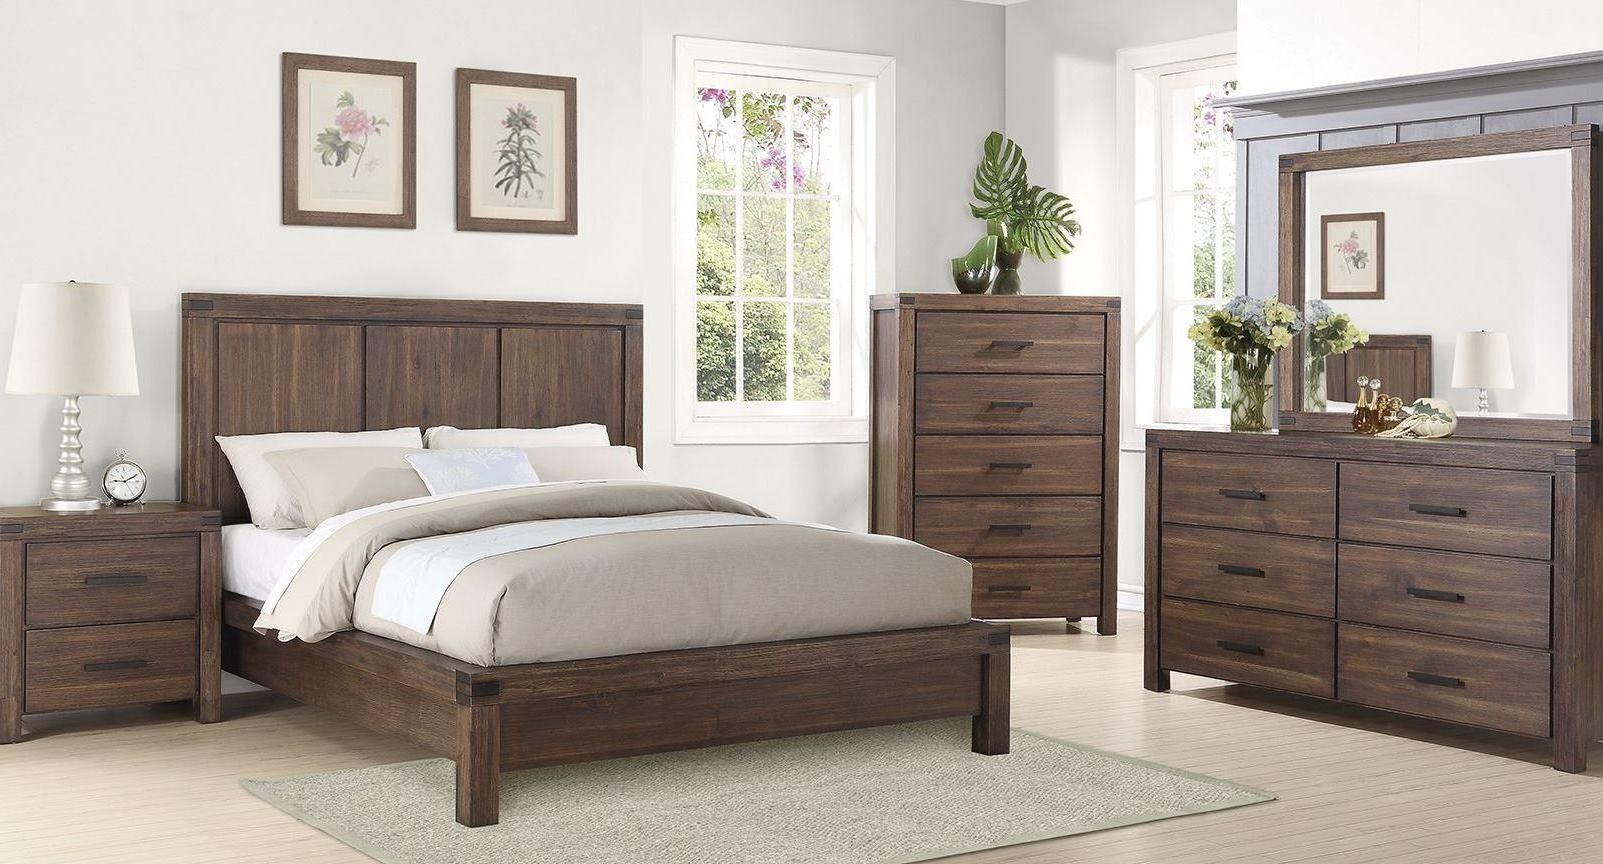 coaster bedroom sets lancashire wire brushed cinnamon bedroom set from coaster 11149